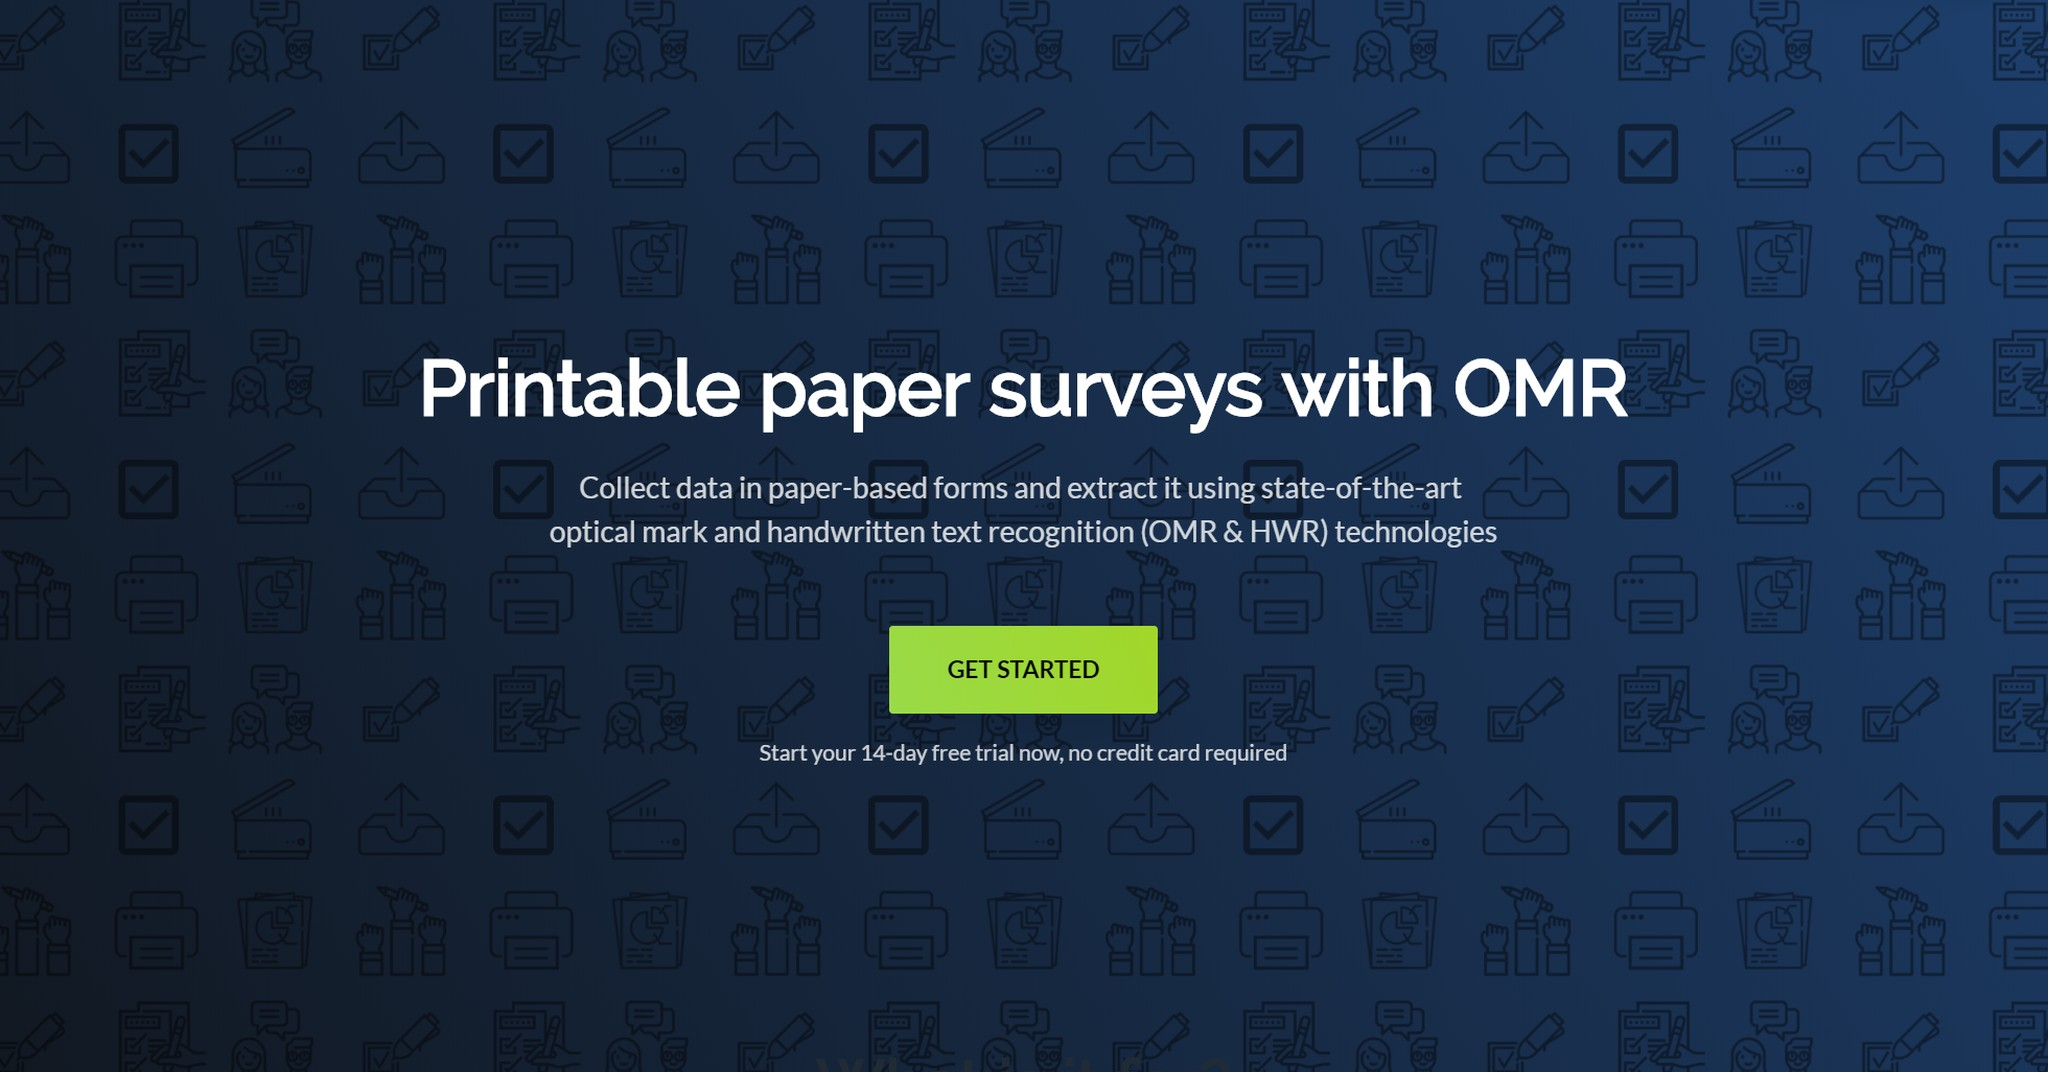 PaperSurvey.io